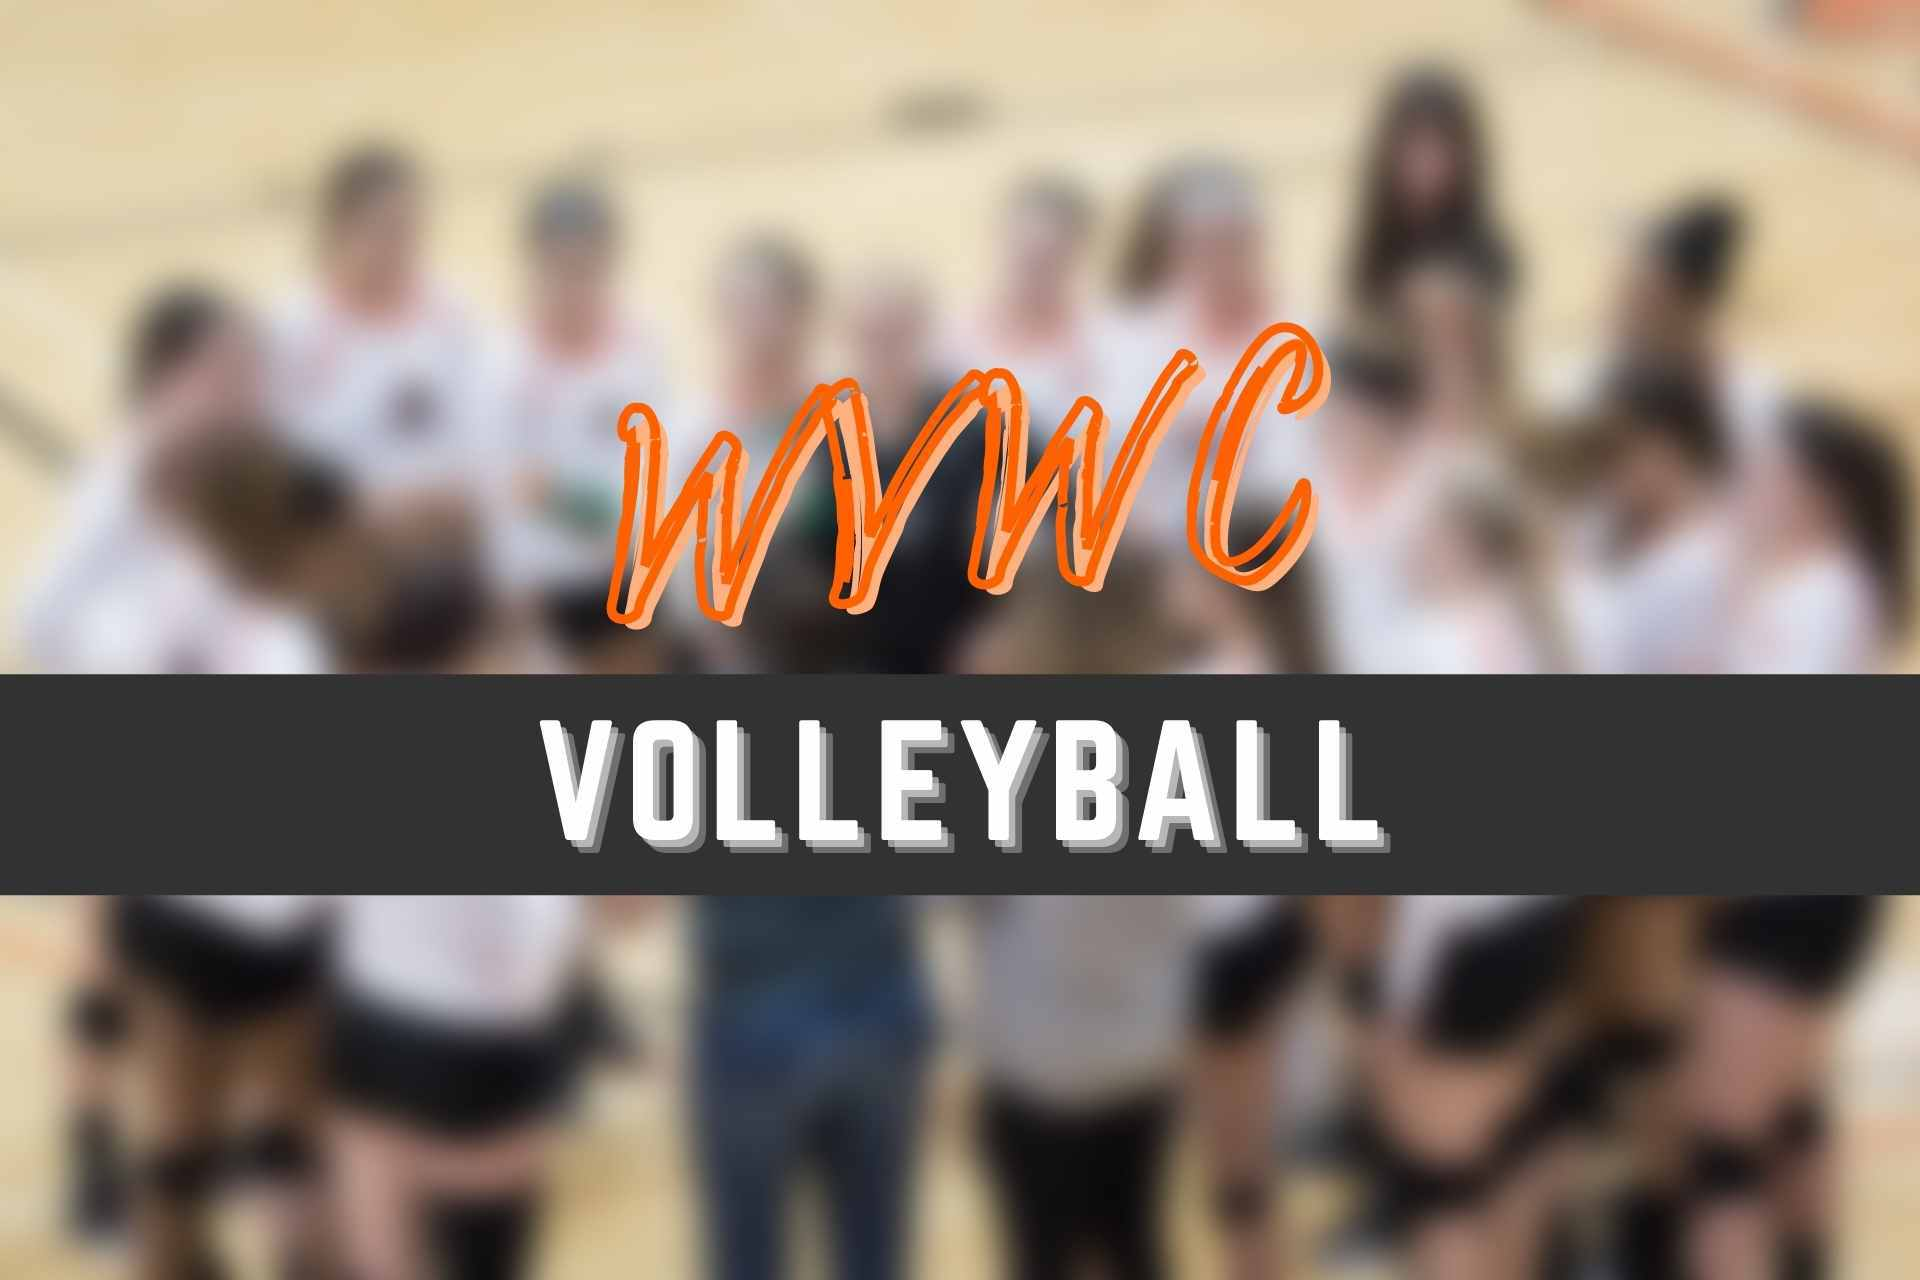 WVWC Volleyball